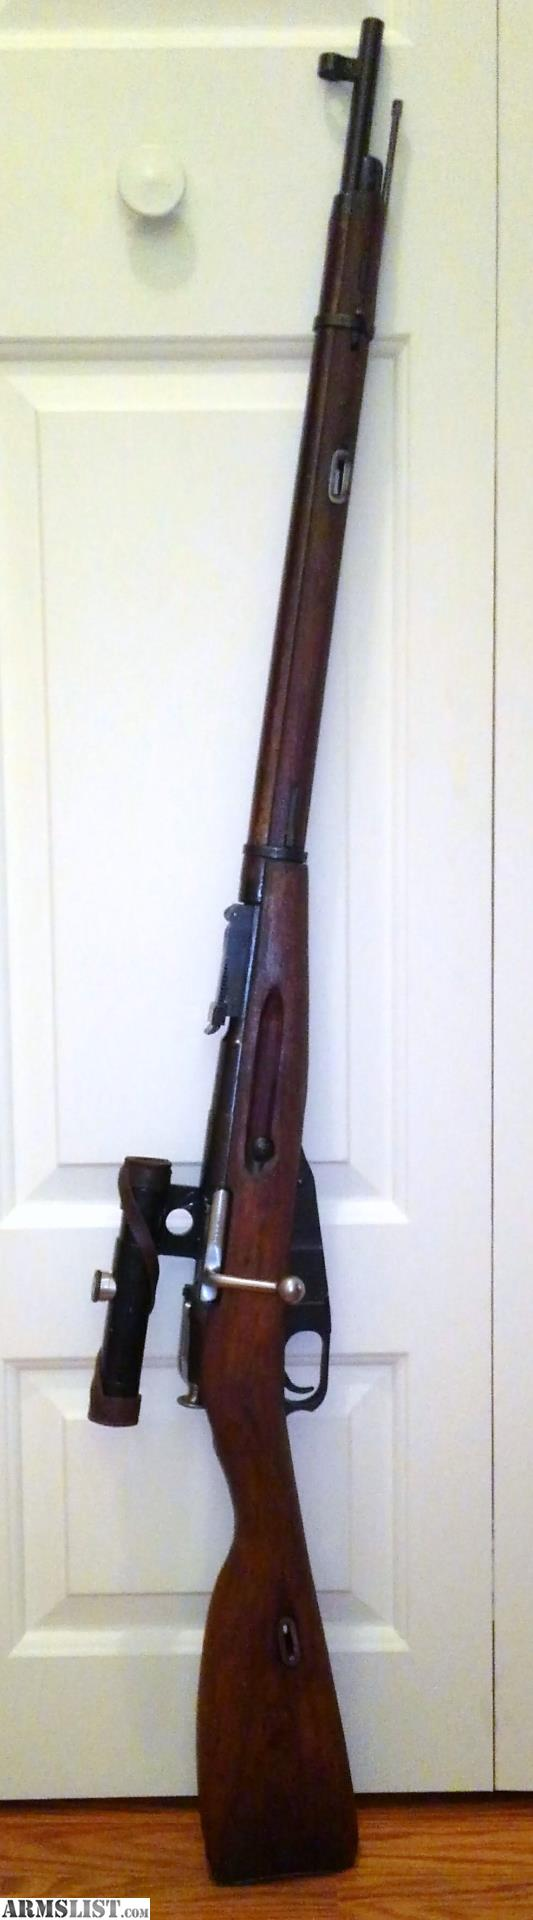 Armslist For Sale Mosin Nagant 91 30 Sniper Rifle Parts Diagram 1944 Izhevsk With Clear Scope And Covers Bent Bolt All Original This Version Was Given To Yugoslavia By Russia